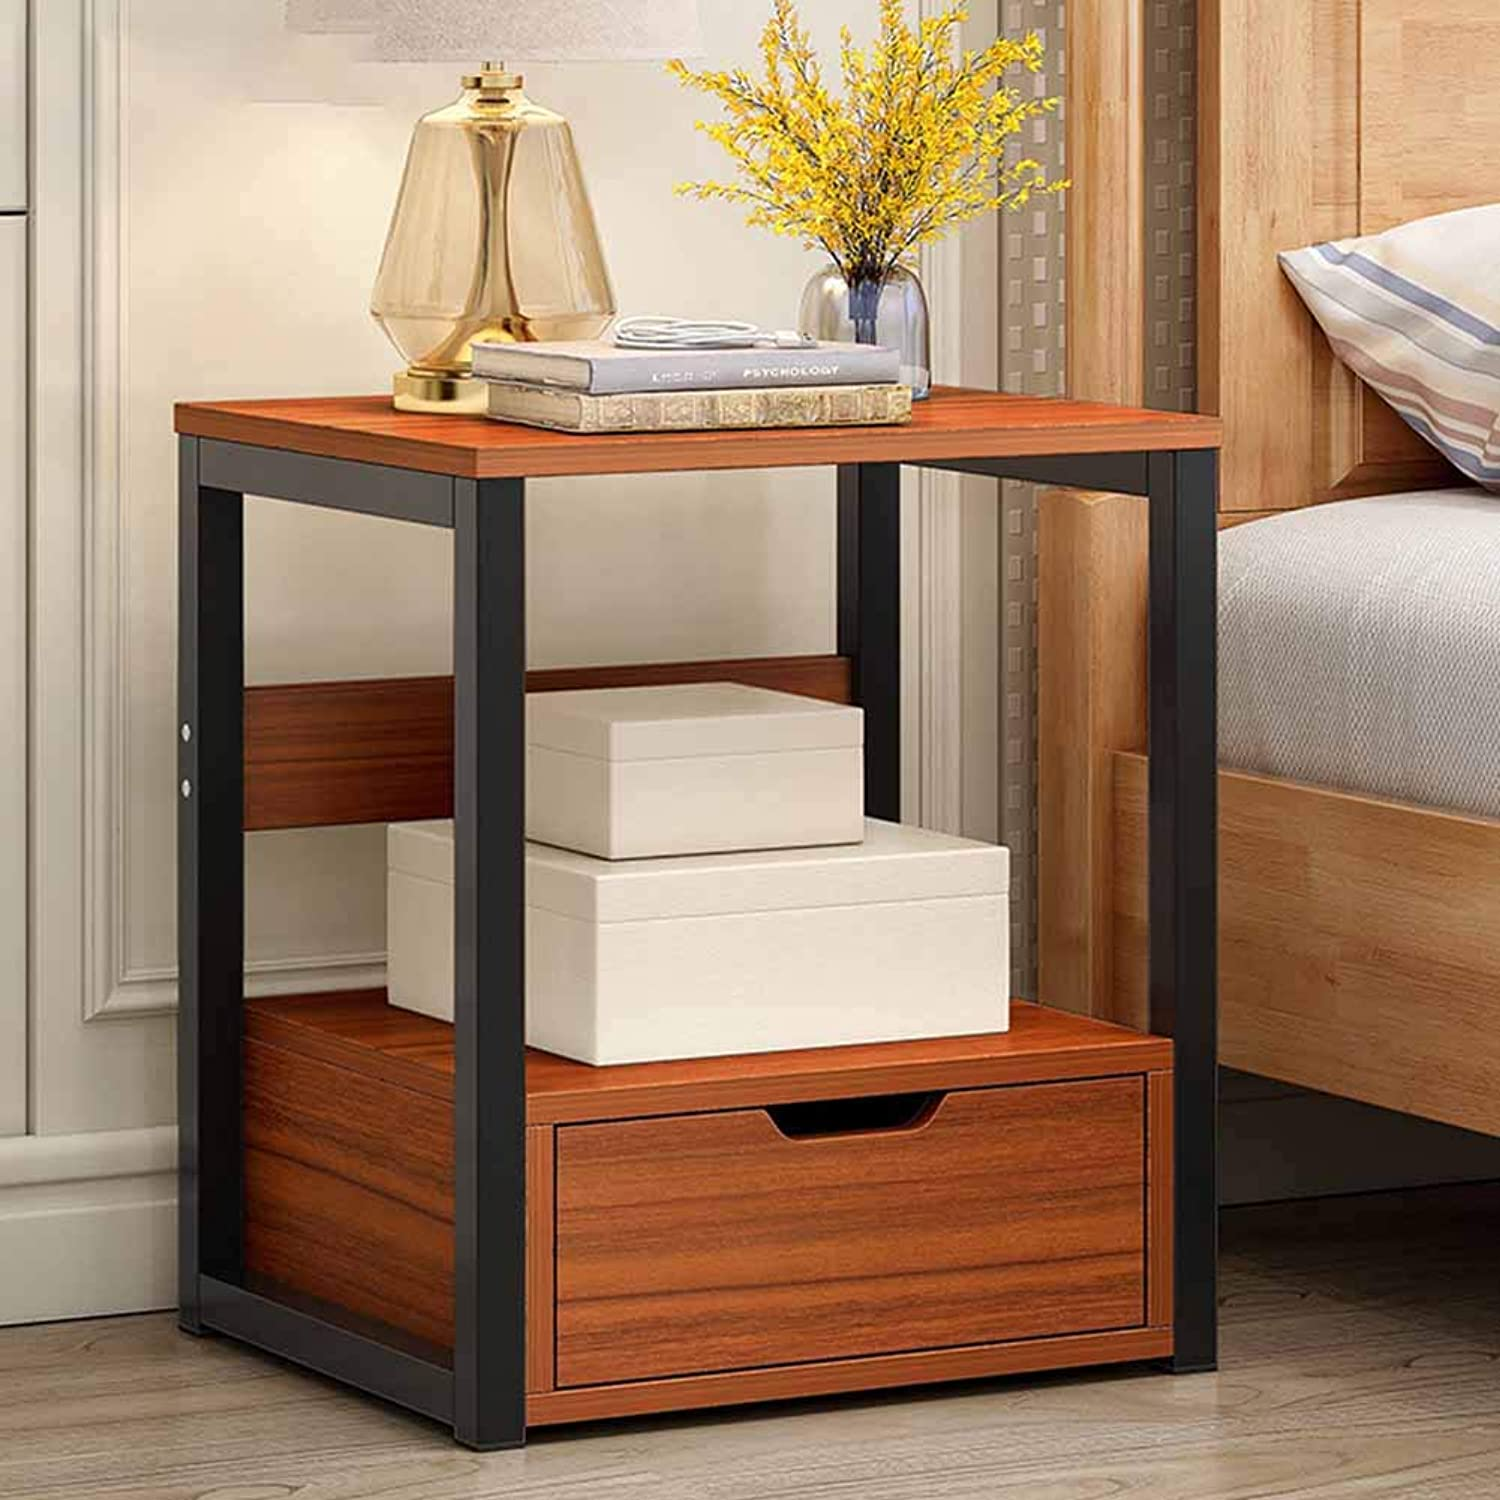 Coffee Table Bedside Cabinets, Simple Small Cabinet Invisible Handle, Single Drawer Multi-Functional Storage, Student Dormitory Bedroom Bedside 2 Colours (color   Wood color)